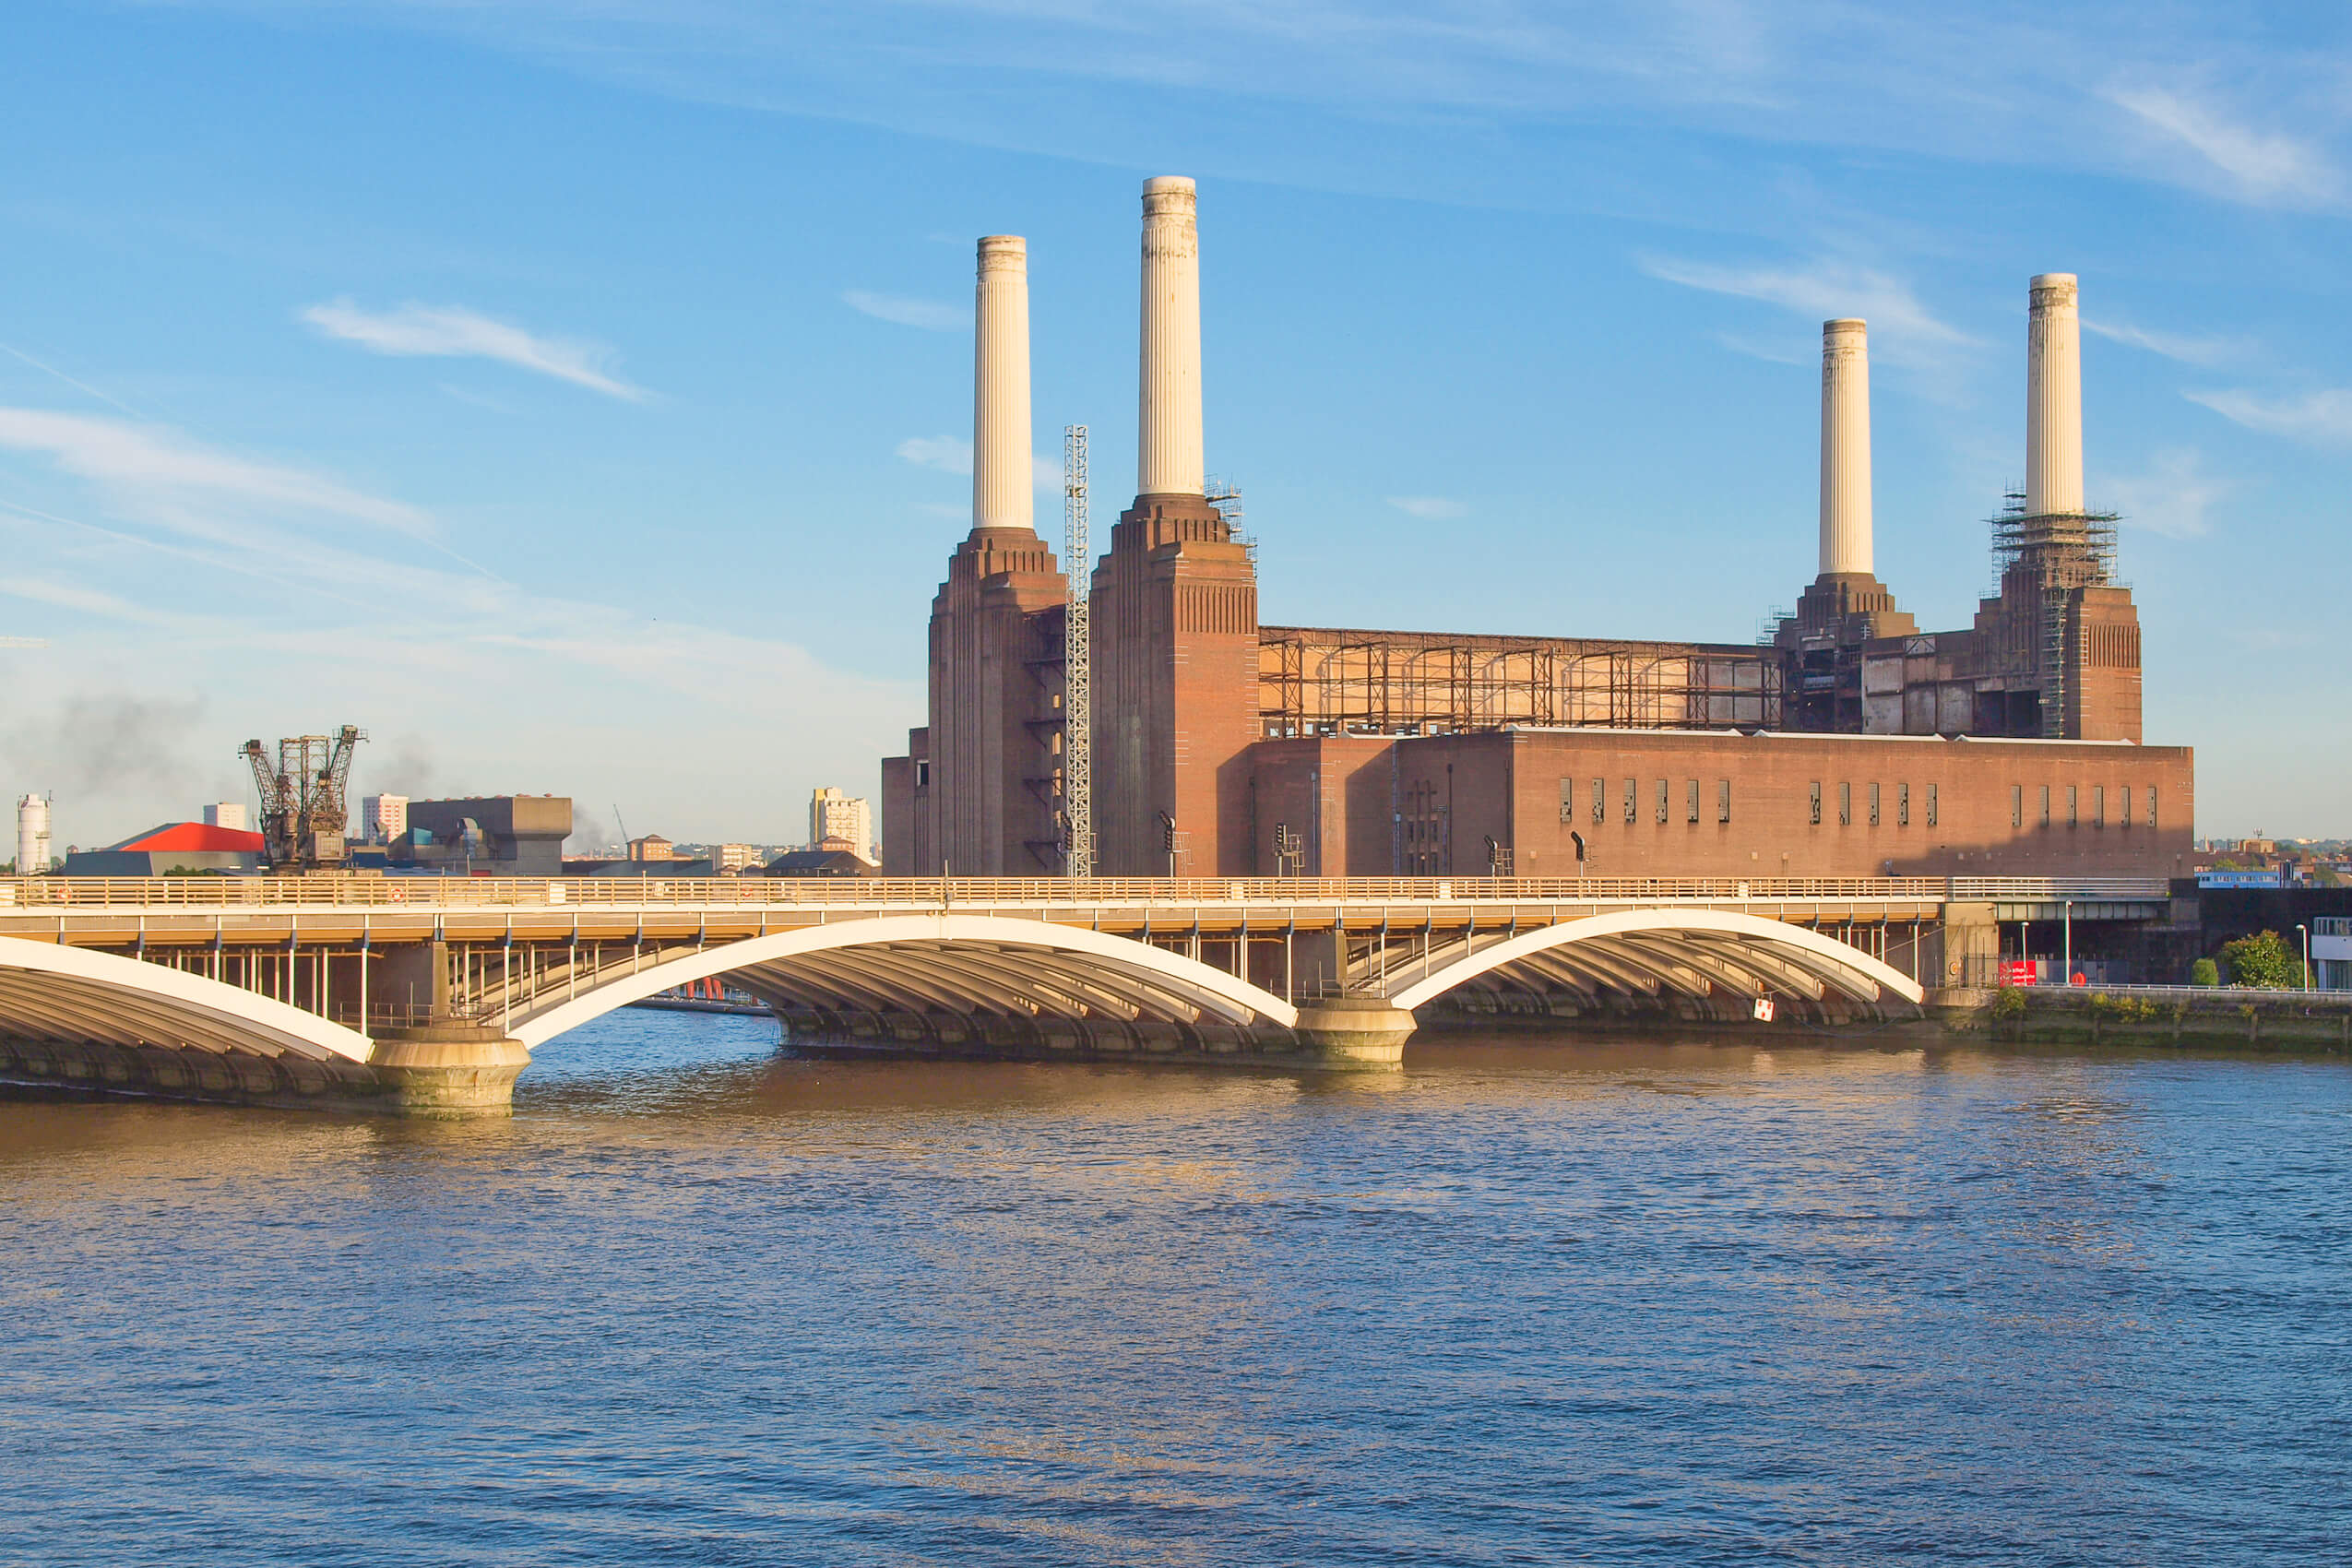 Battersea Power Station, with its four iconic chimneys